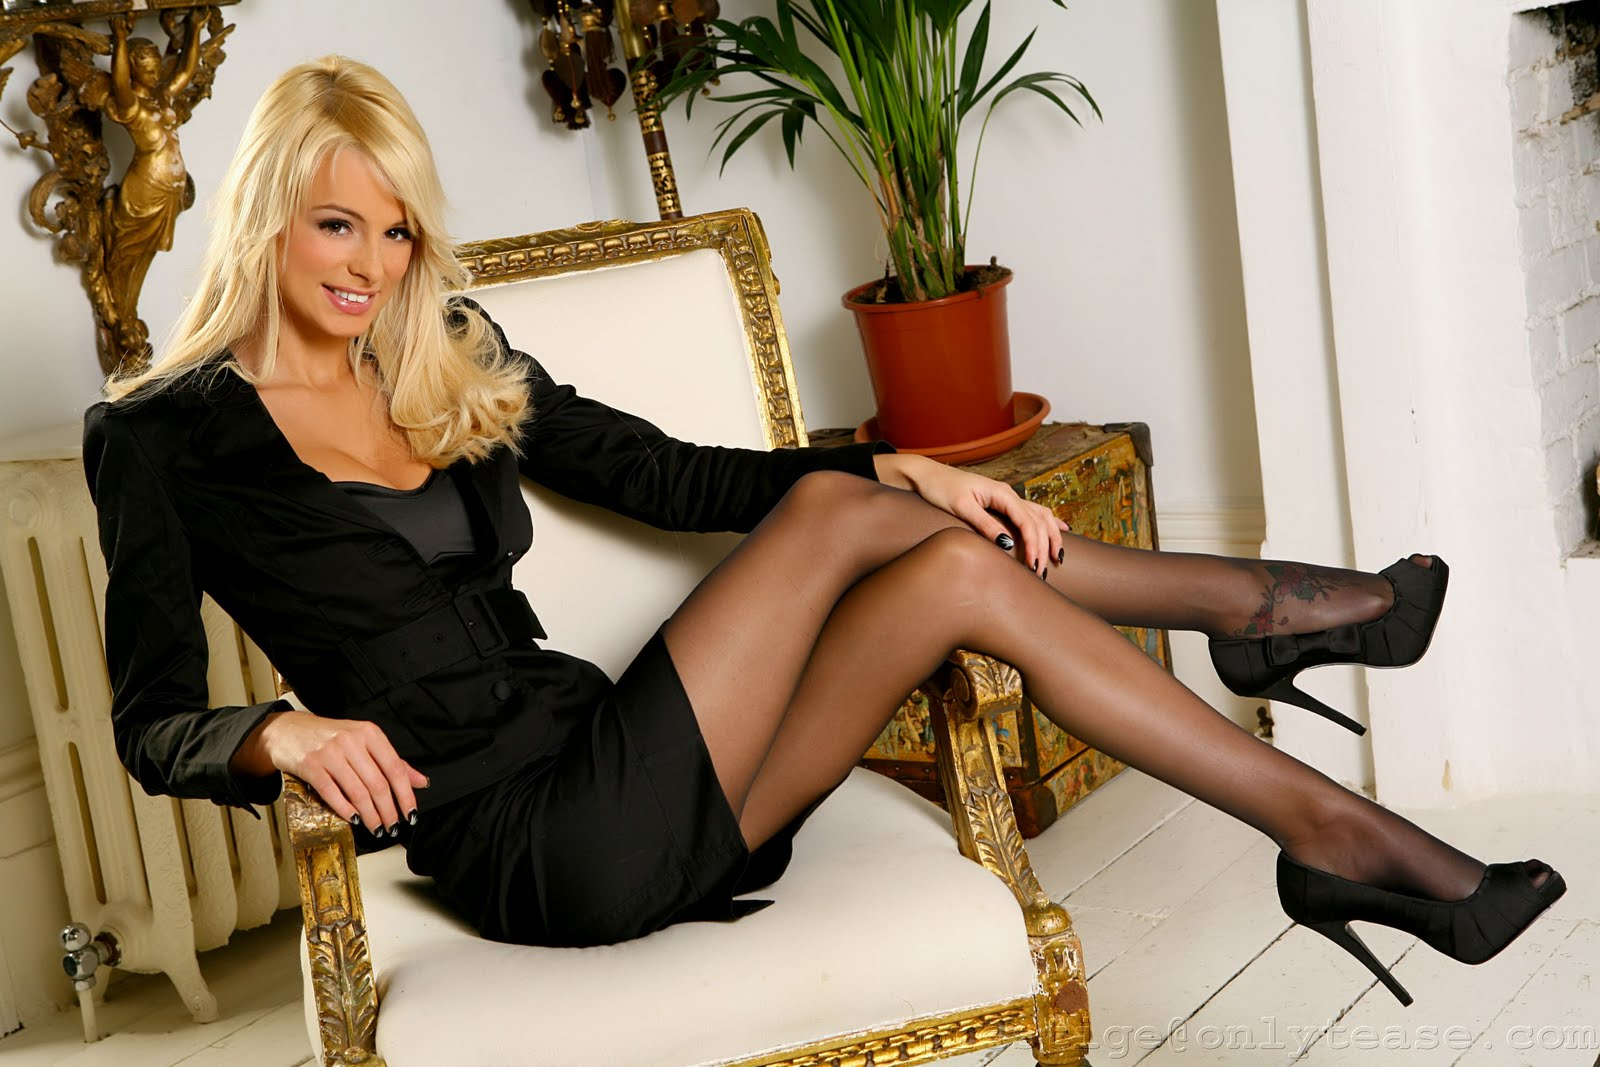 hot pantyhose porn pictures hot